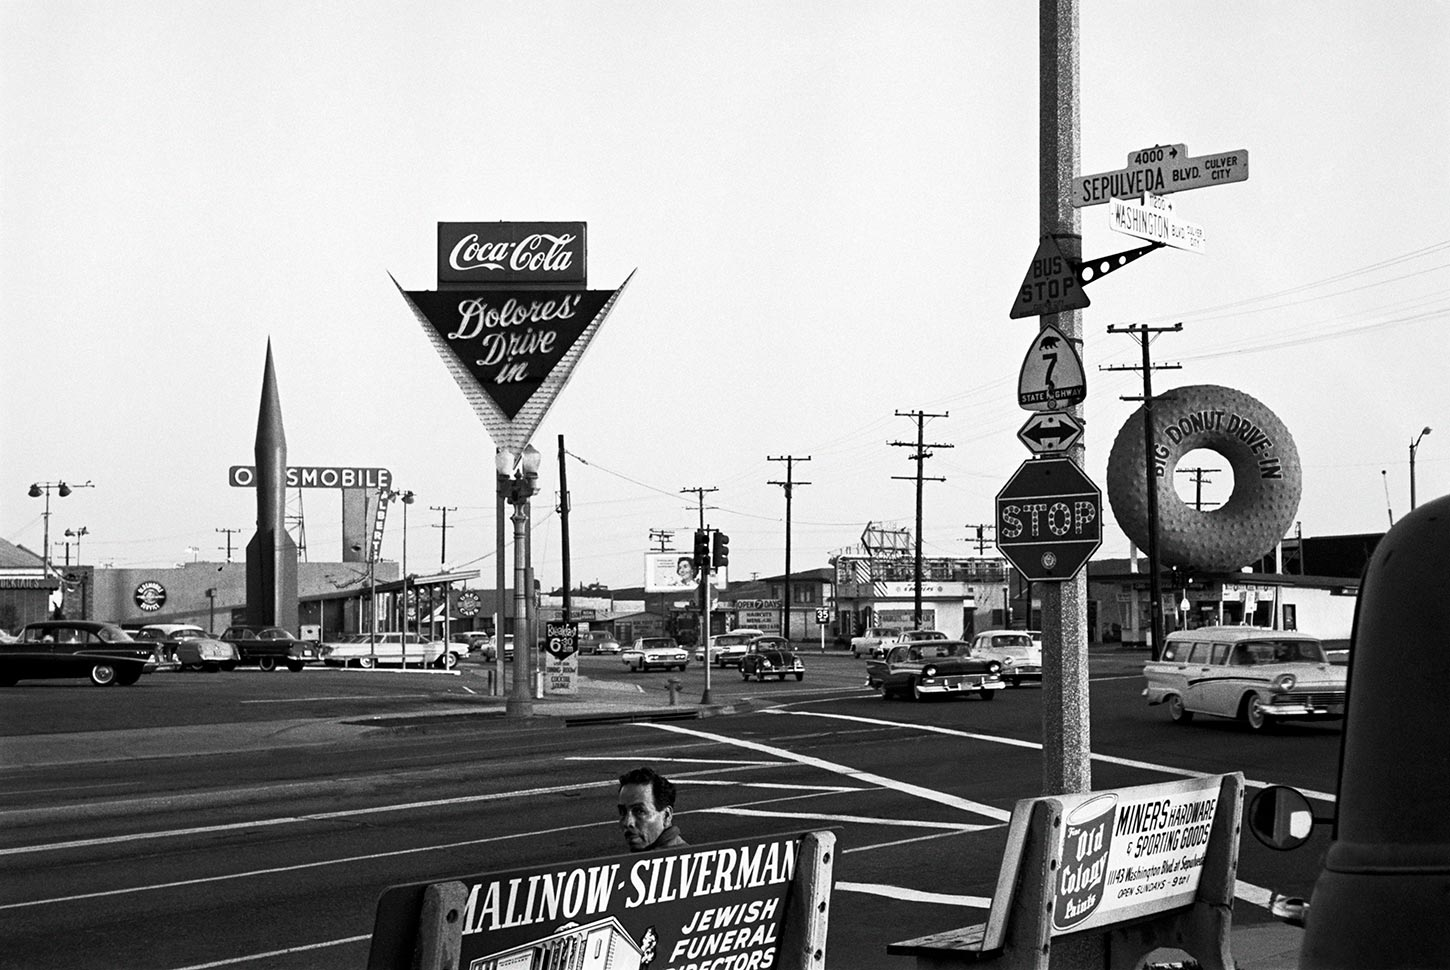 The corner of Sepulveda and Washington Boulevards. Los Angeles, California, USA. 1960.